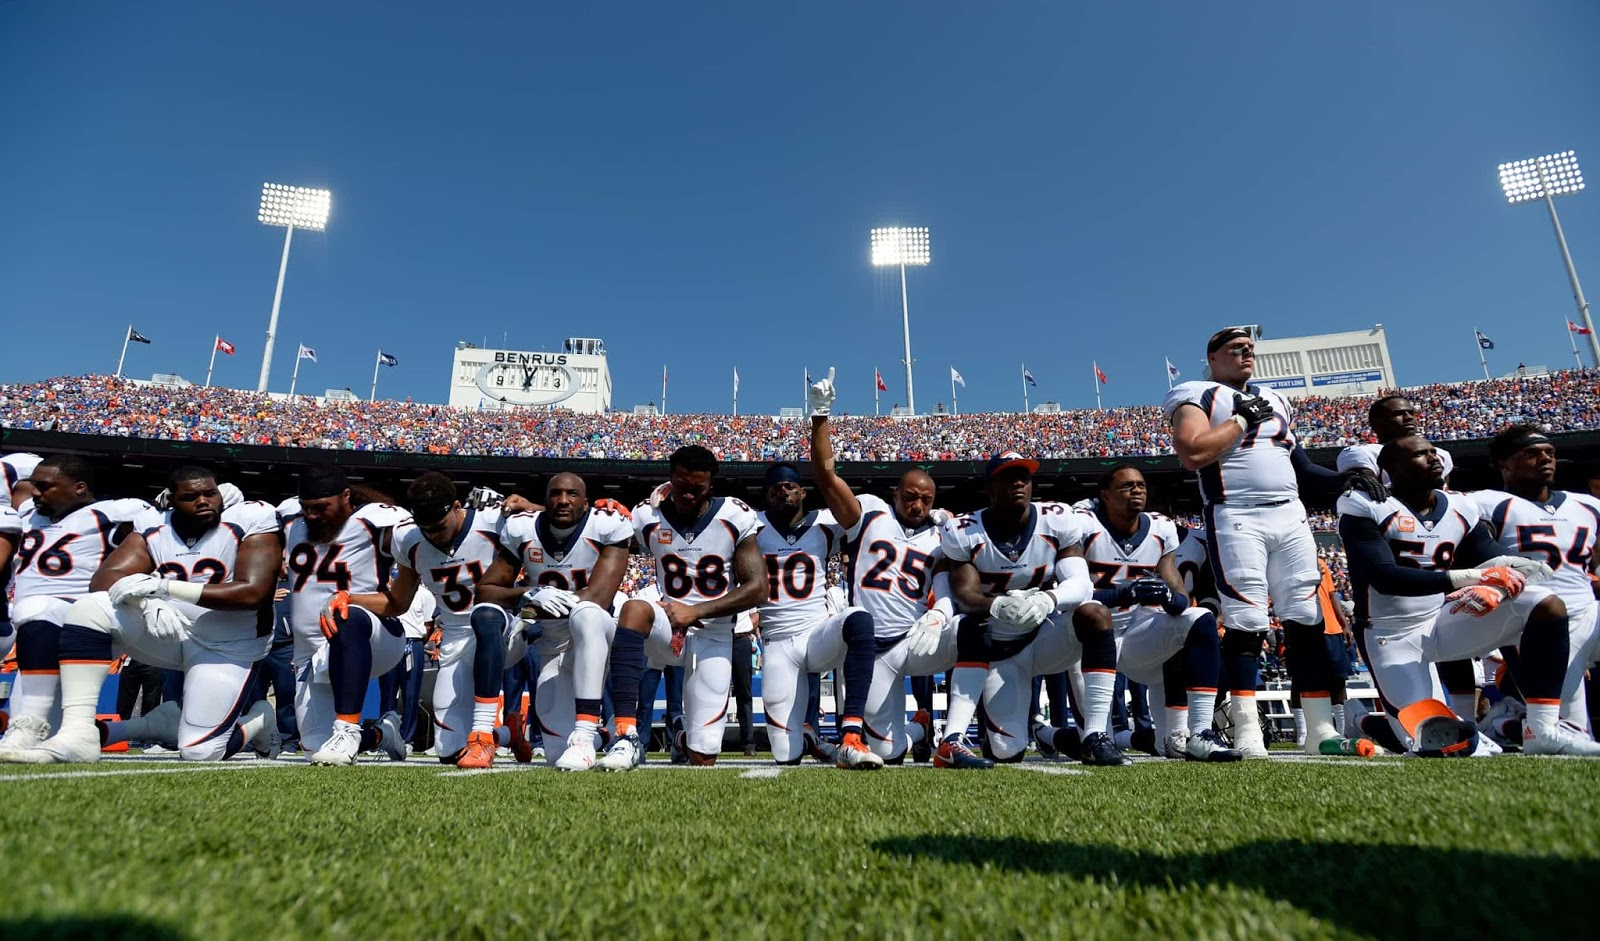 25 Of The Most Intriguing Pictures Of 2017 - Denver Broncos team take a knee